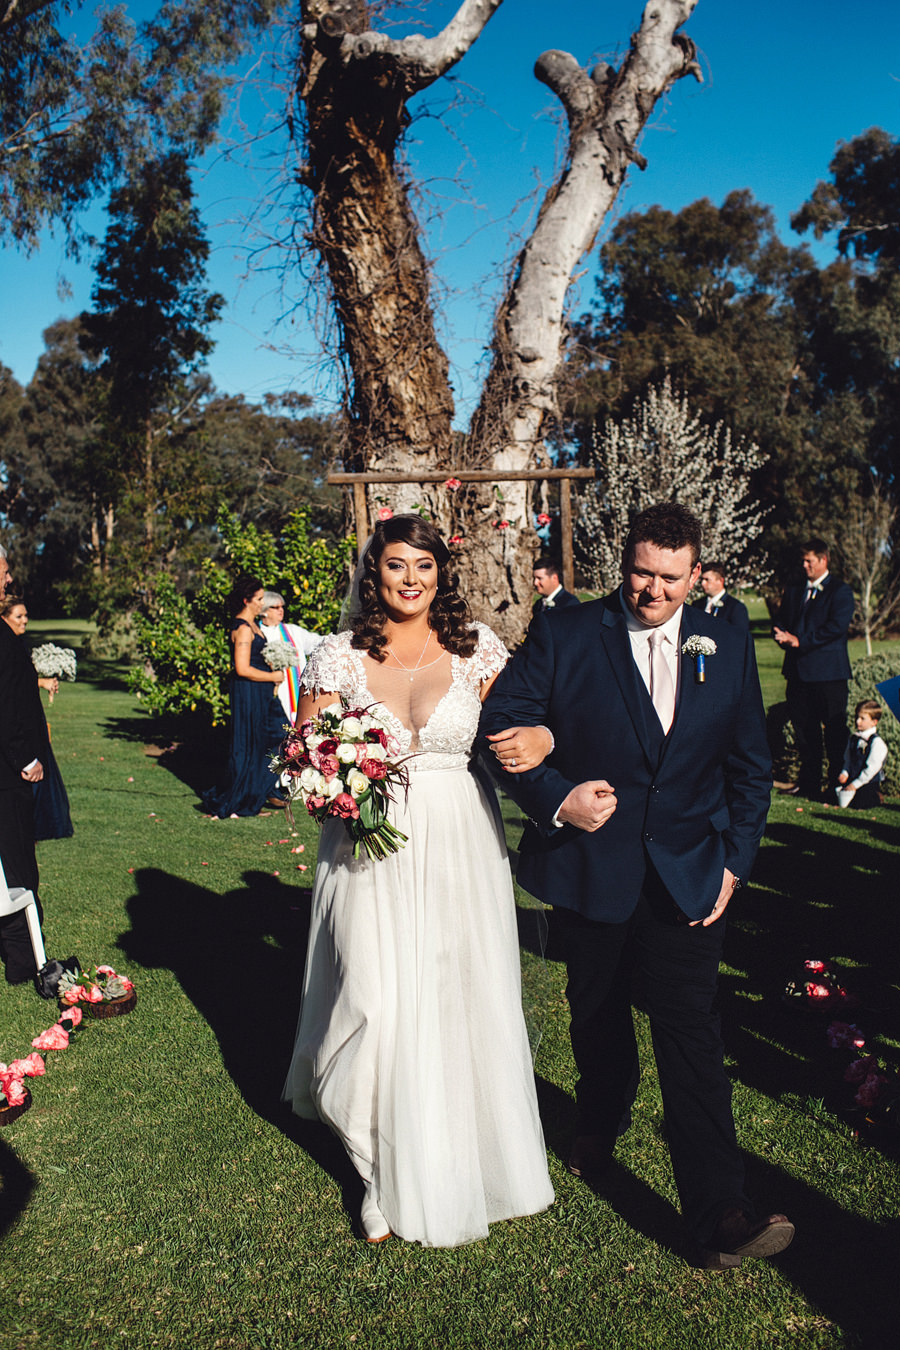 Eugowra Wedding Photographers | Walking down the aisle